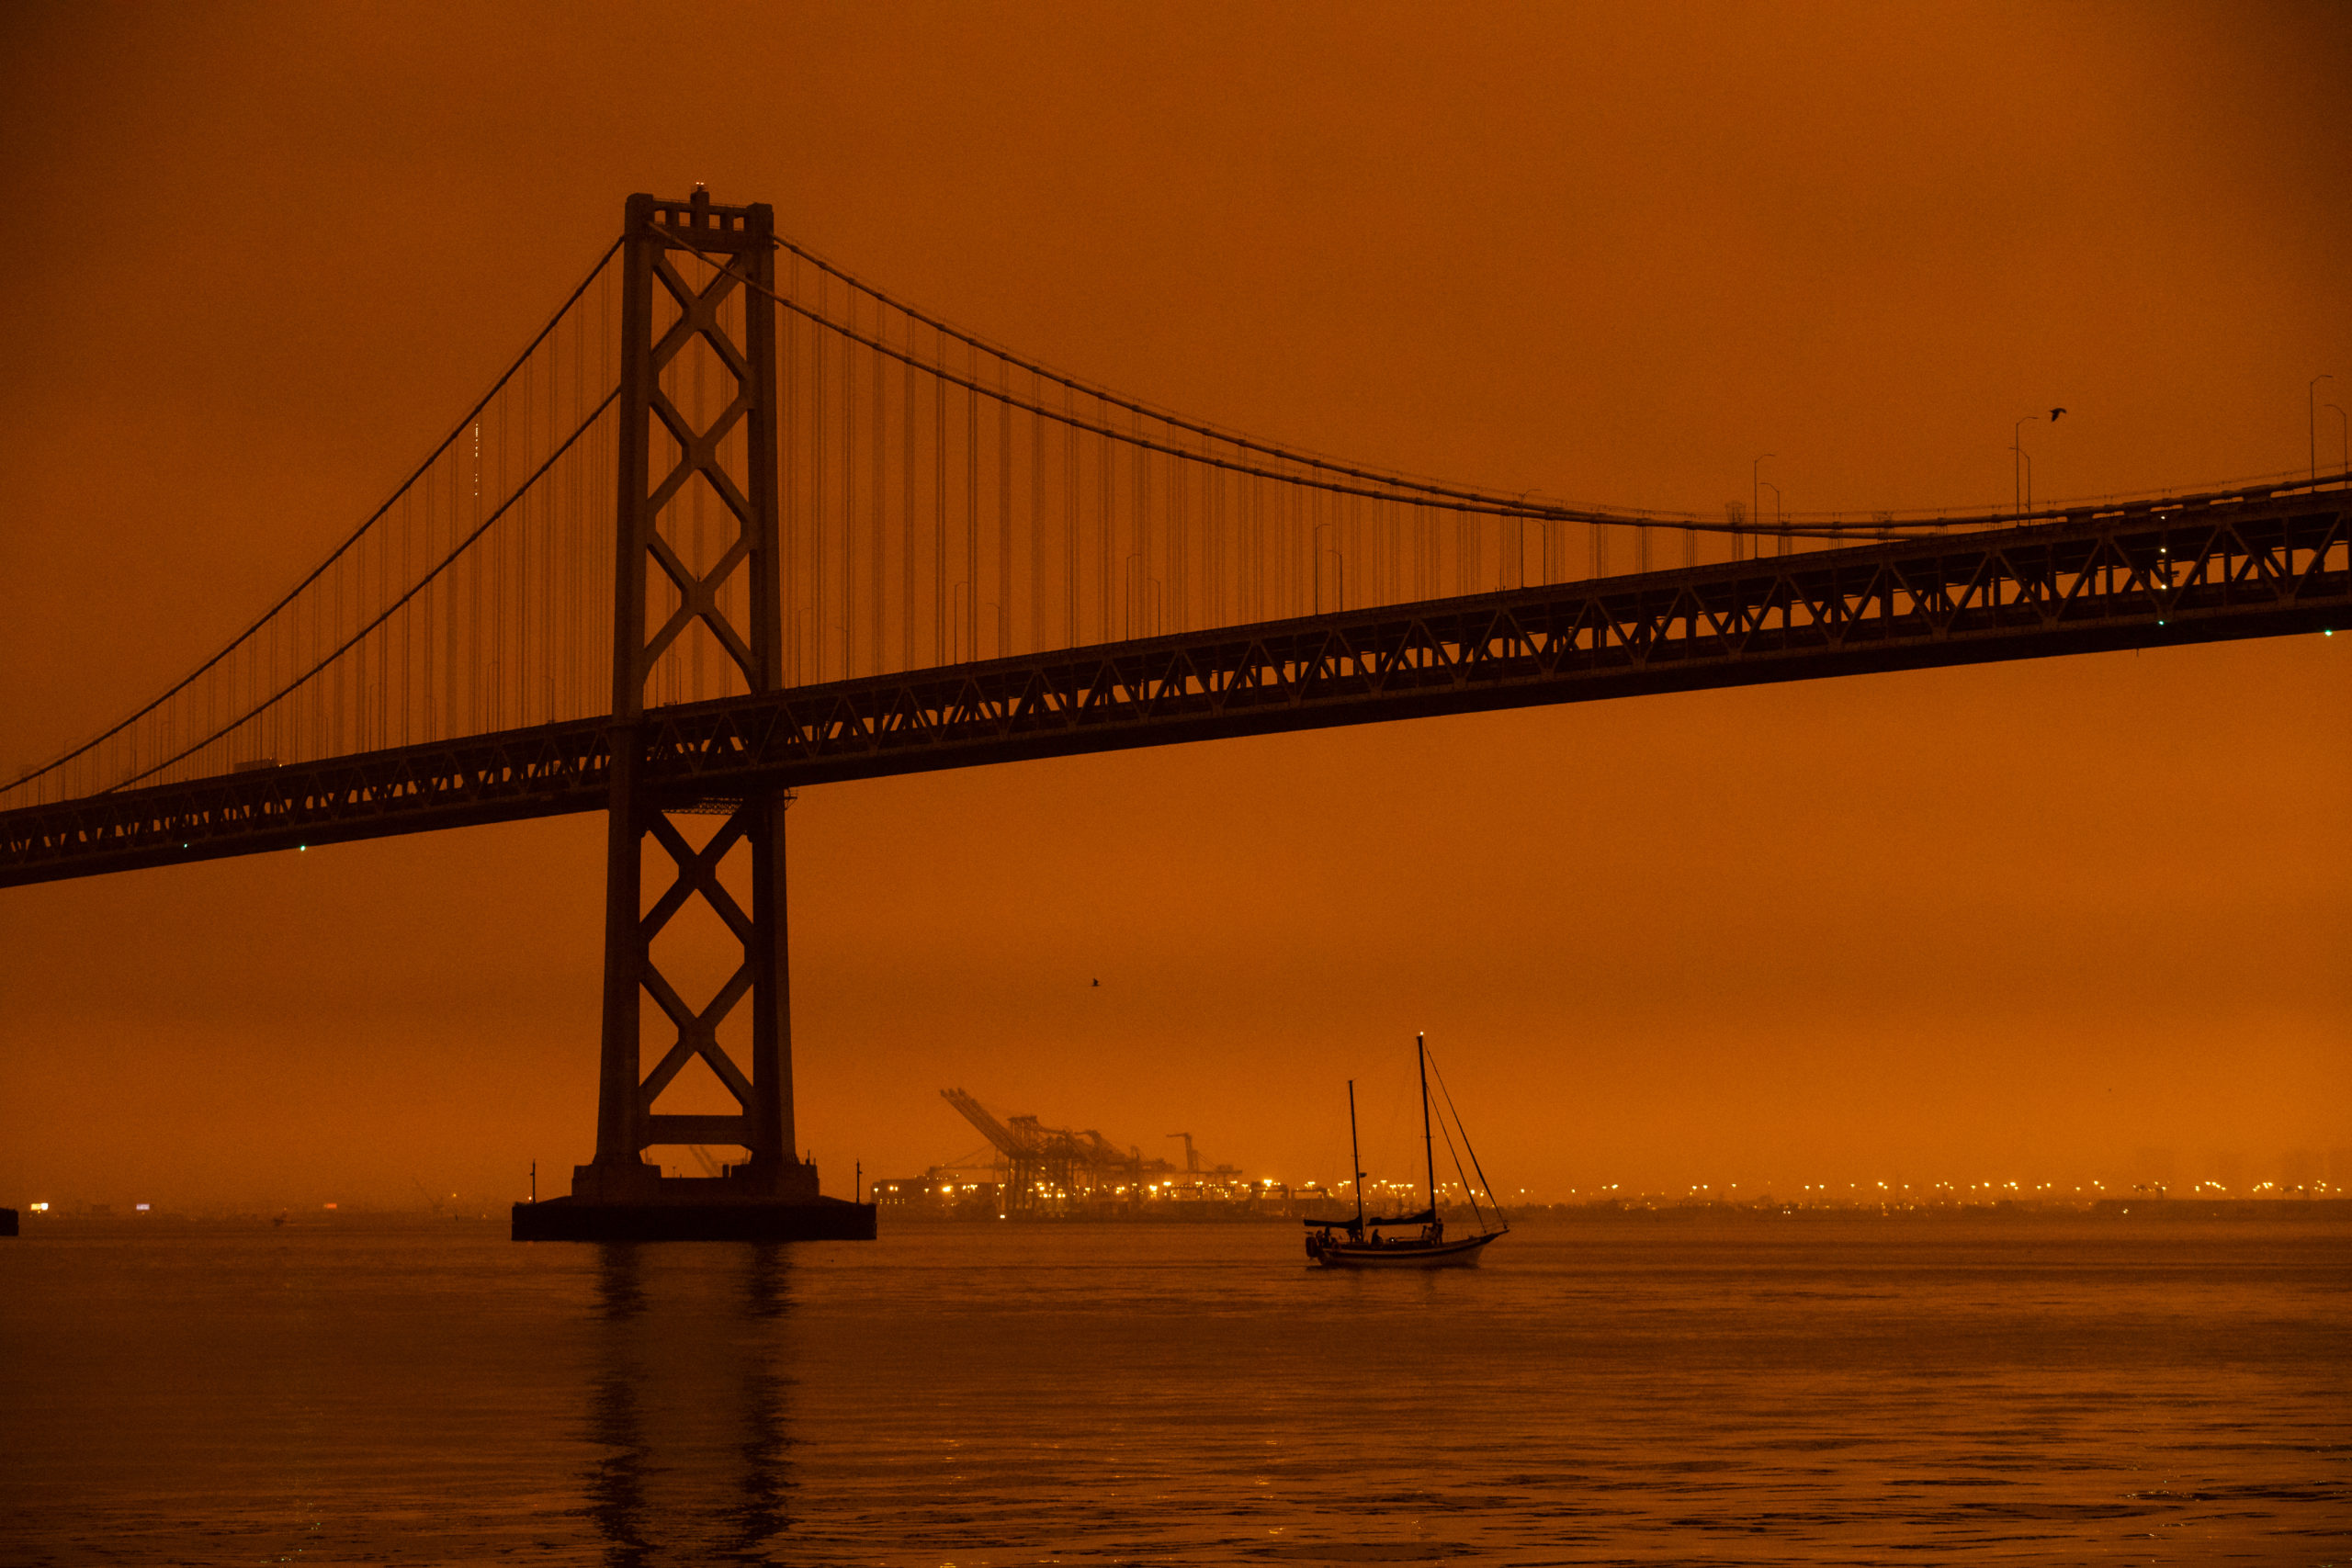 SAN FRANCISCO, CA - SEPTEMBER 09: A ship passes beneath the Bay Bridge as smoke from various wildfires burning across Northern California mixes with the marine layer, blanketing San Francisco in darkness and an orange glow on September 9, 2020 in San Francisco, California. Over 2 million acres have burned this year as wildfires continue to burn across the state. (Photo by Philip Pacheco/Getty Images)